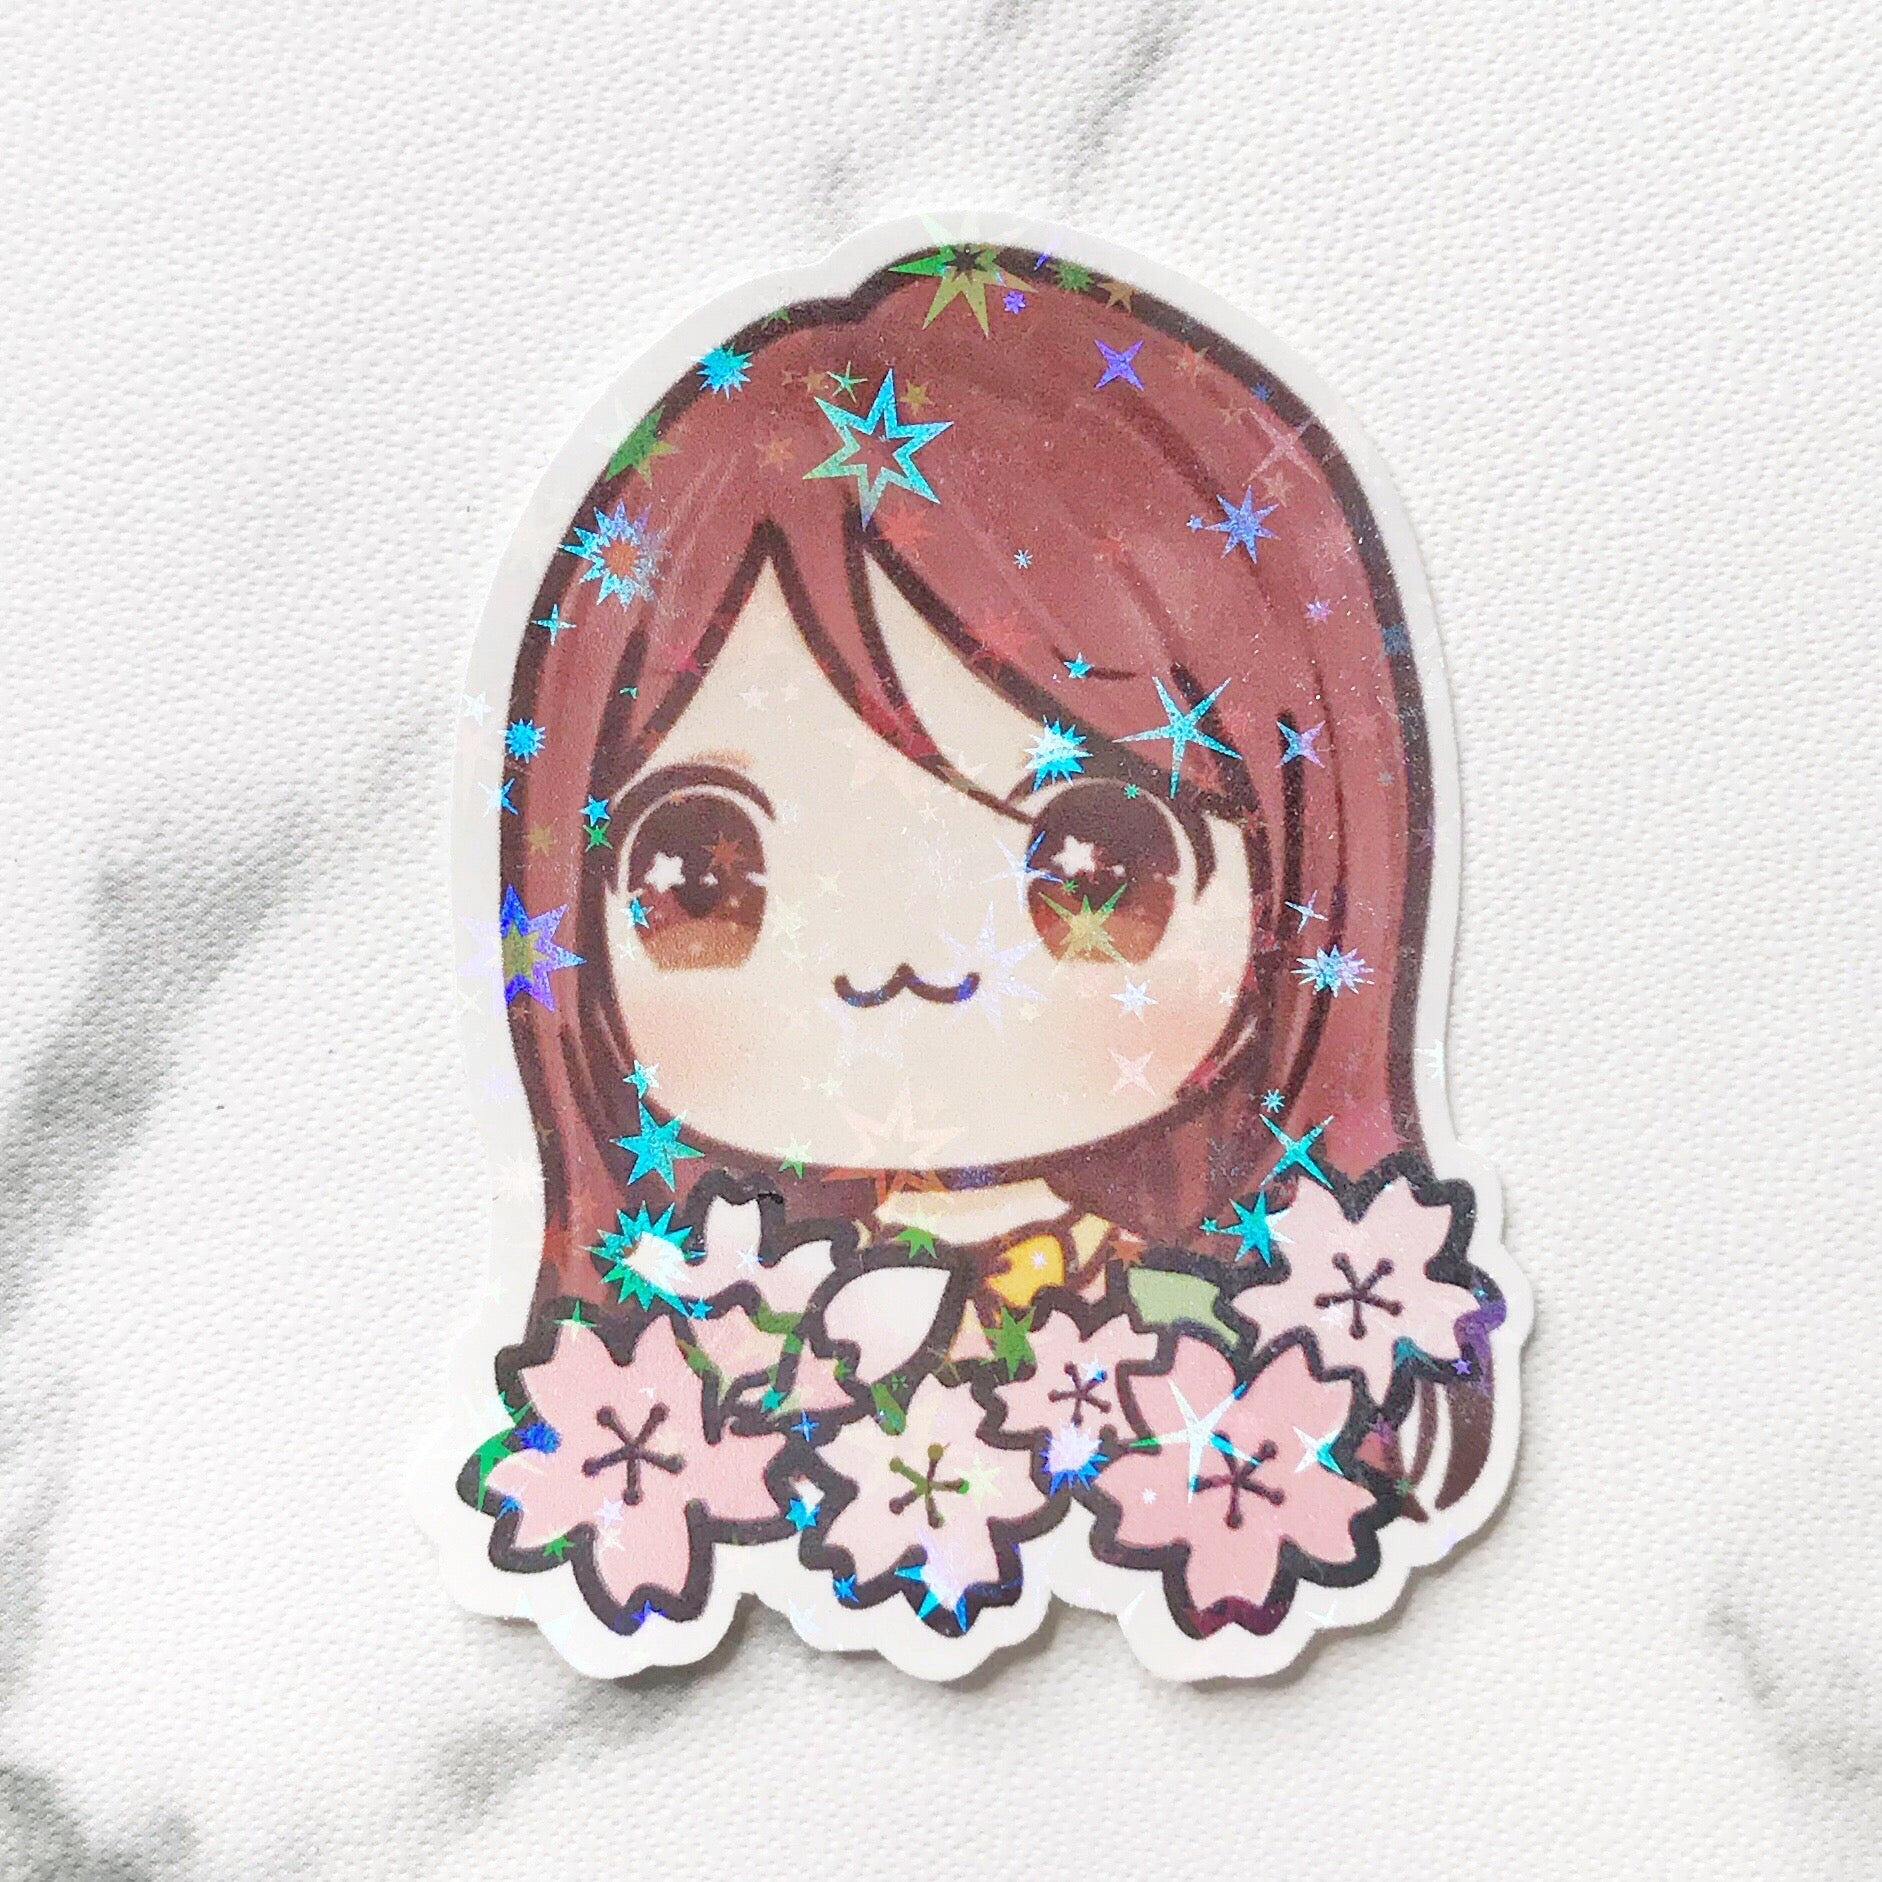 Cherry Blossom Sunny the Girl Holographic Flake Die Cut Sticker (DC030)